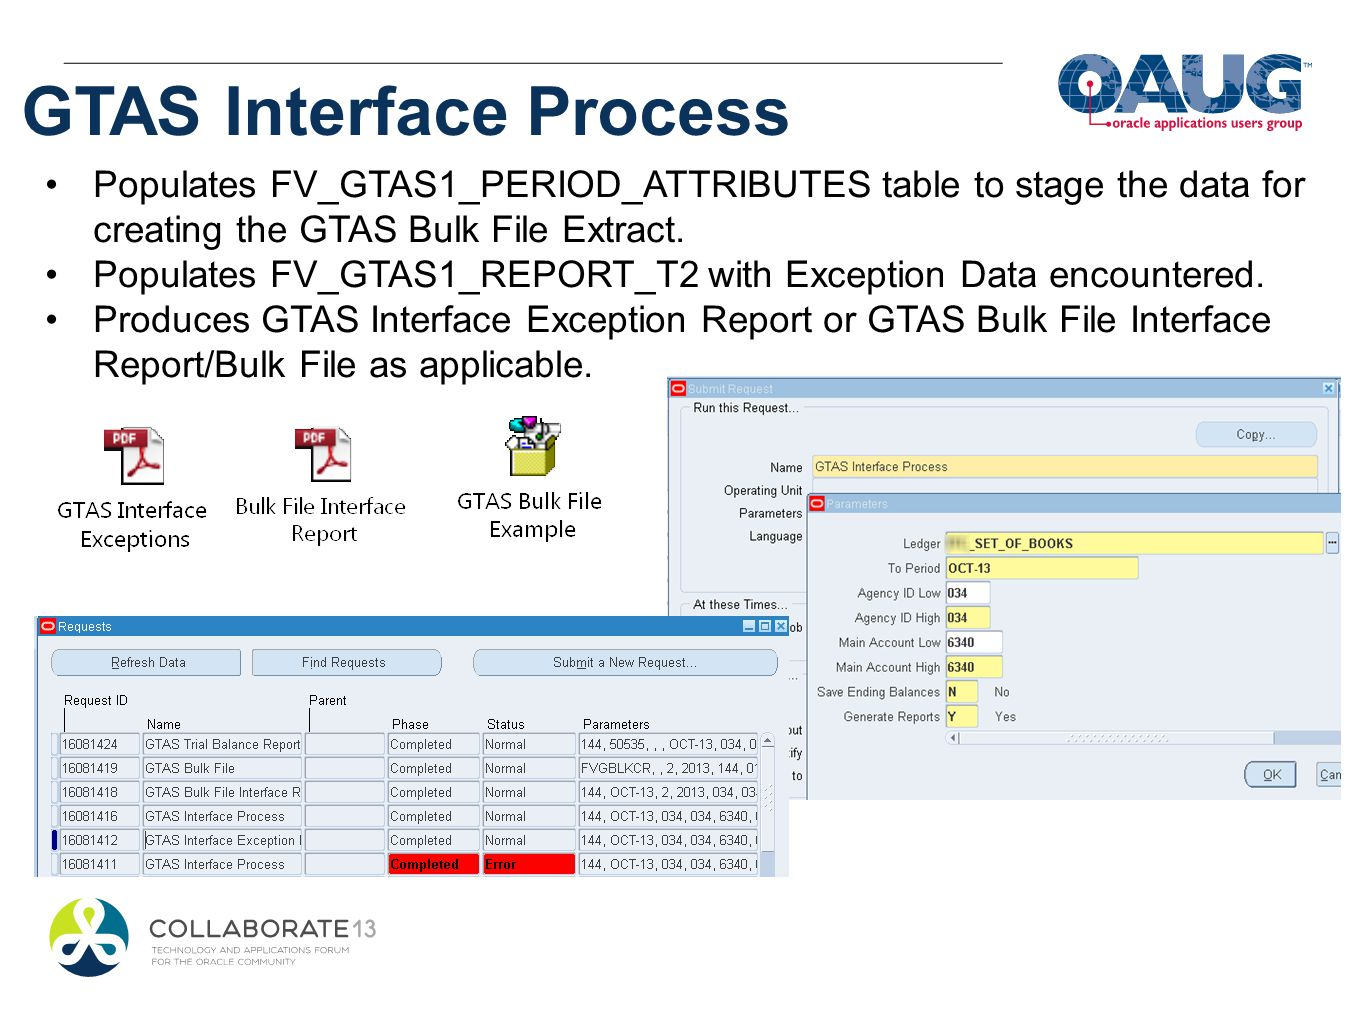 GTAS Interface Process